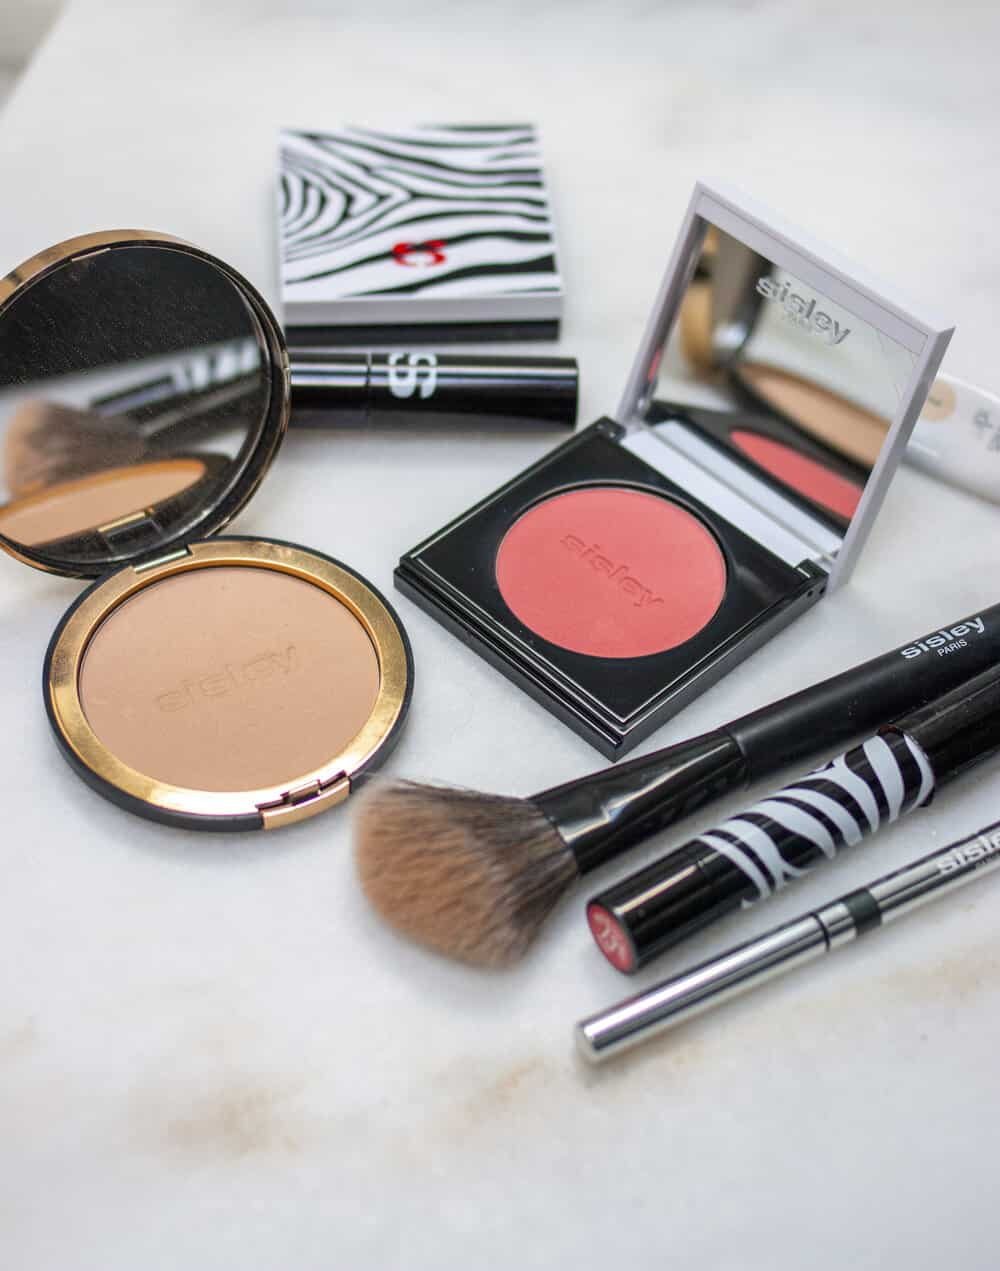 spring makeup sisley everyday parisian